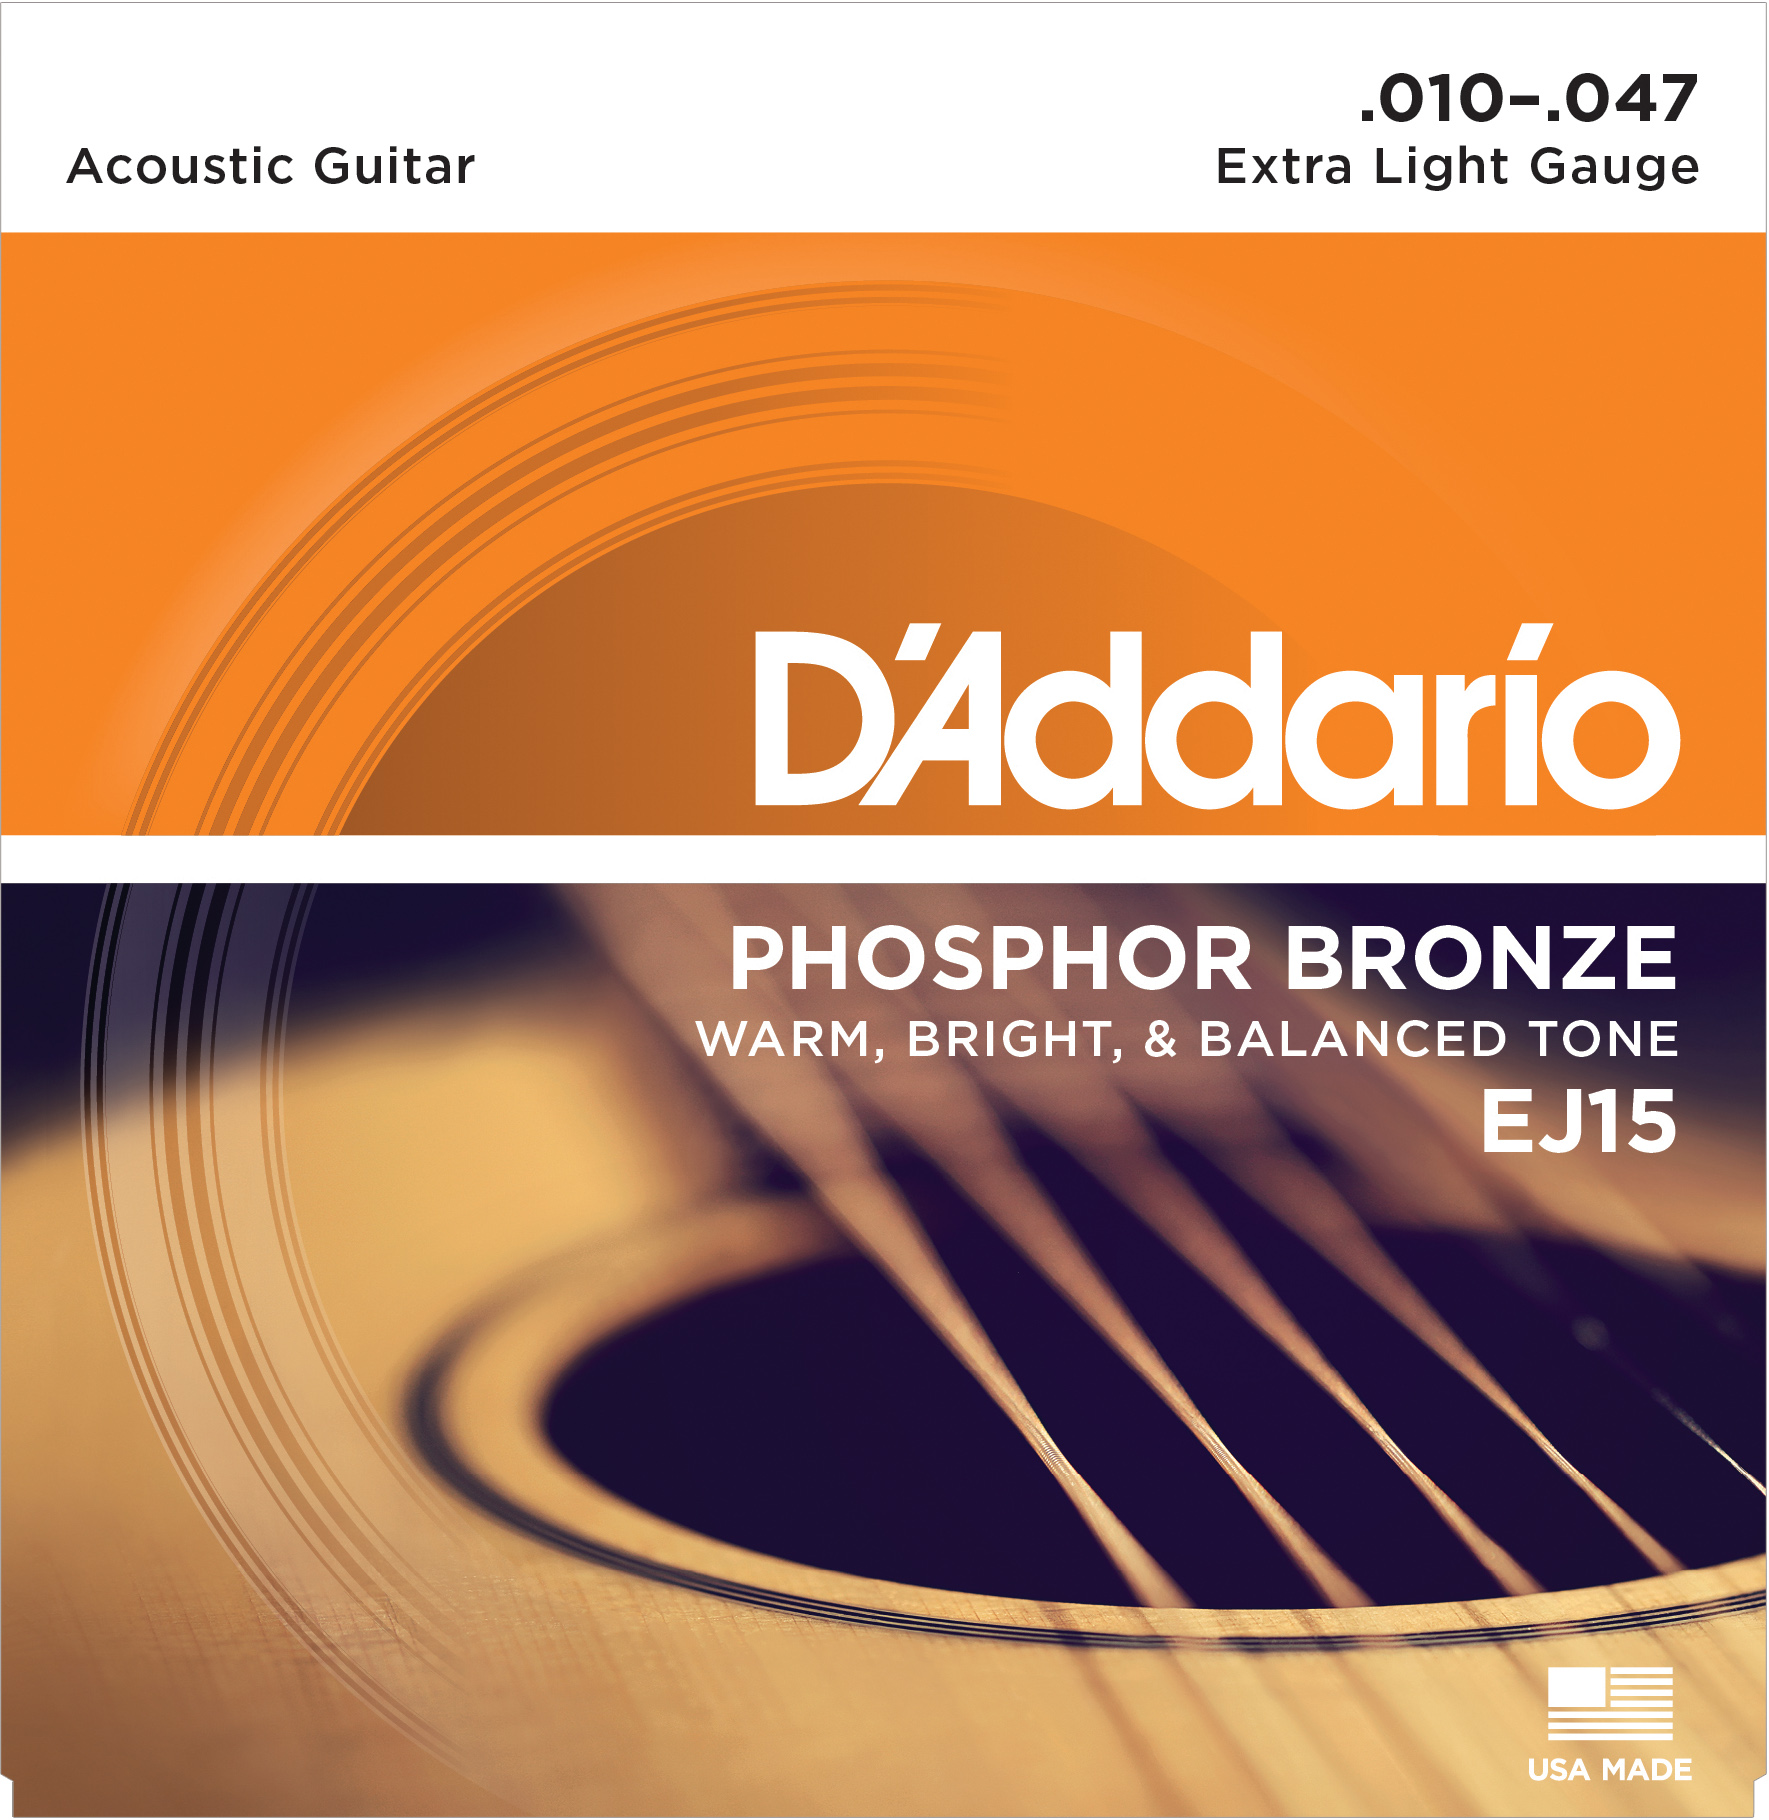 D'Addario phosphor bronze acoustic guitar strings 10-47